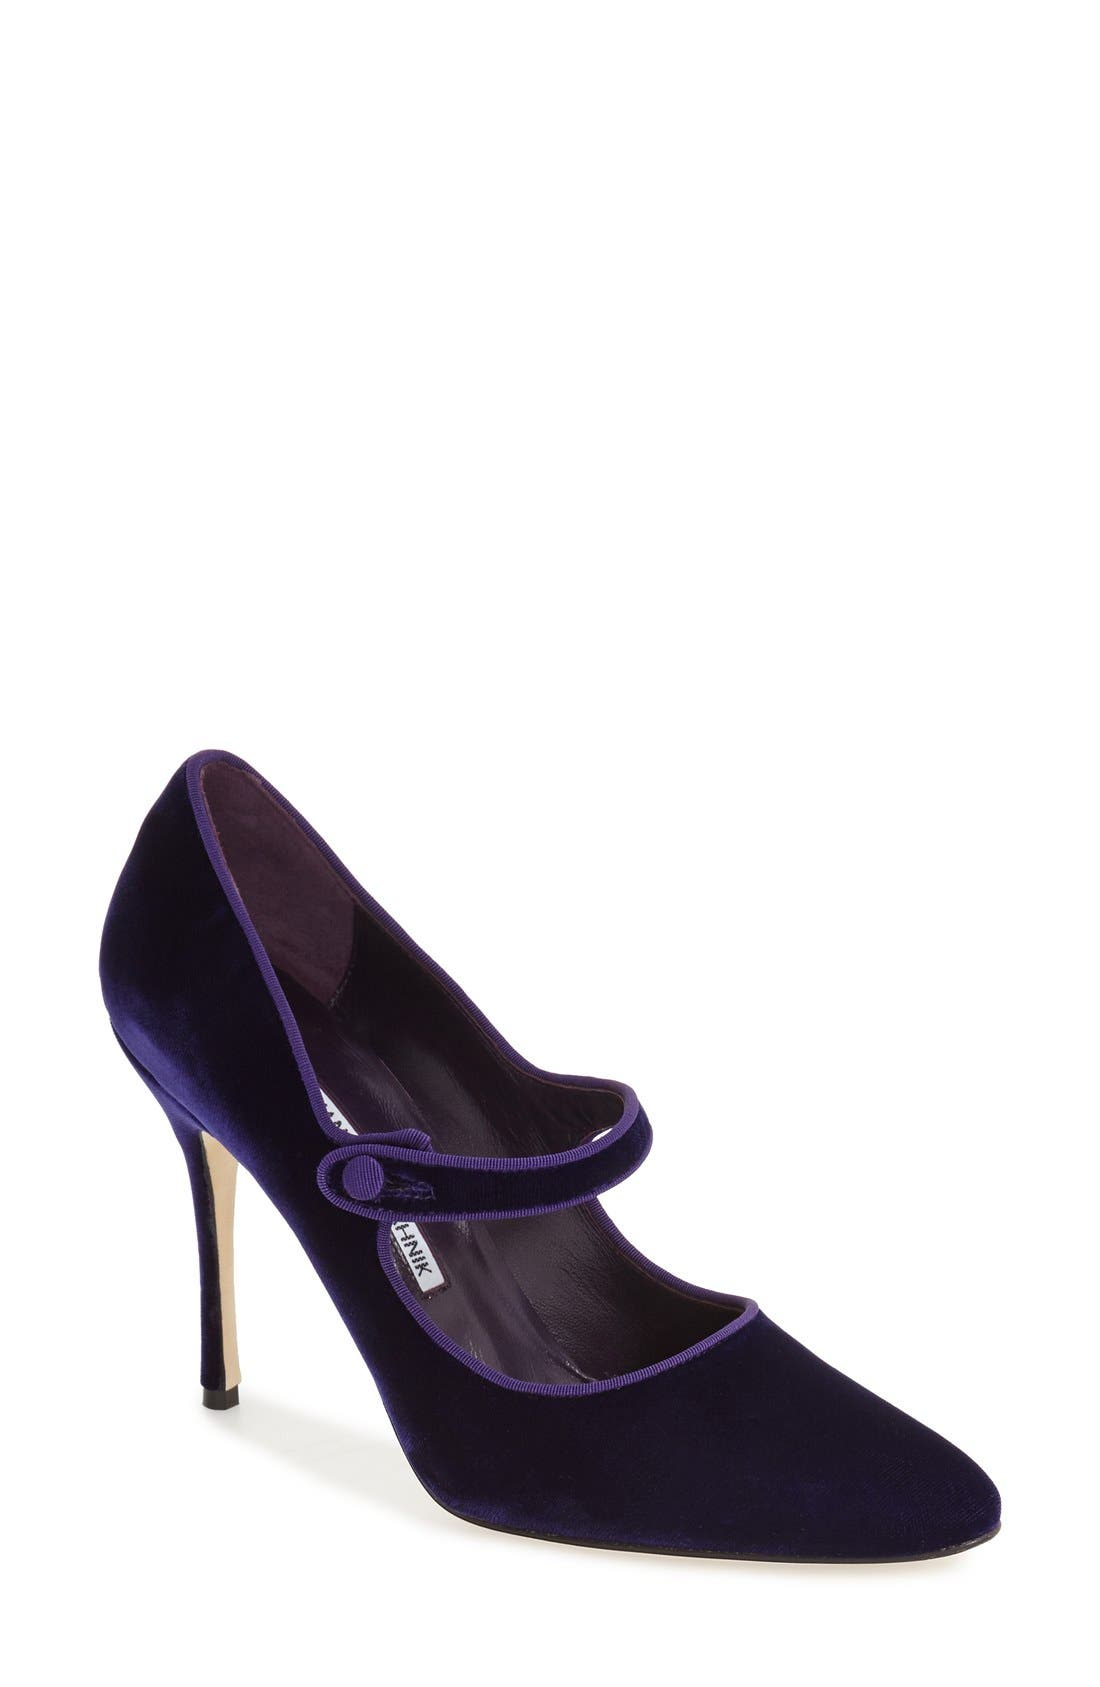 Alternate Image 1 Selected - Manolo Blahnik 'Campy' Velvet Pump (Women) (Nordstrom Exclusive Color)